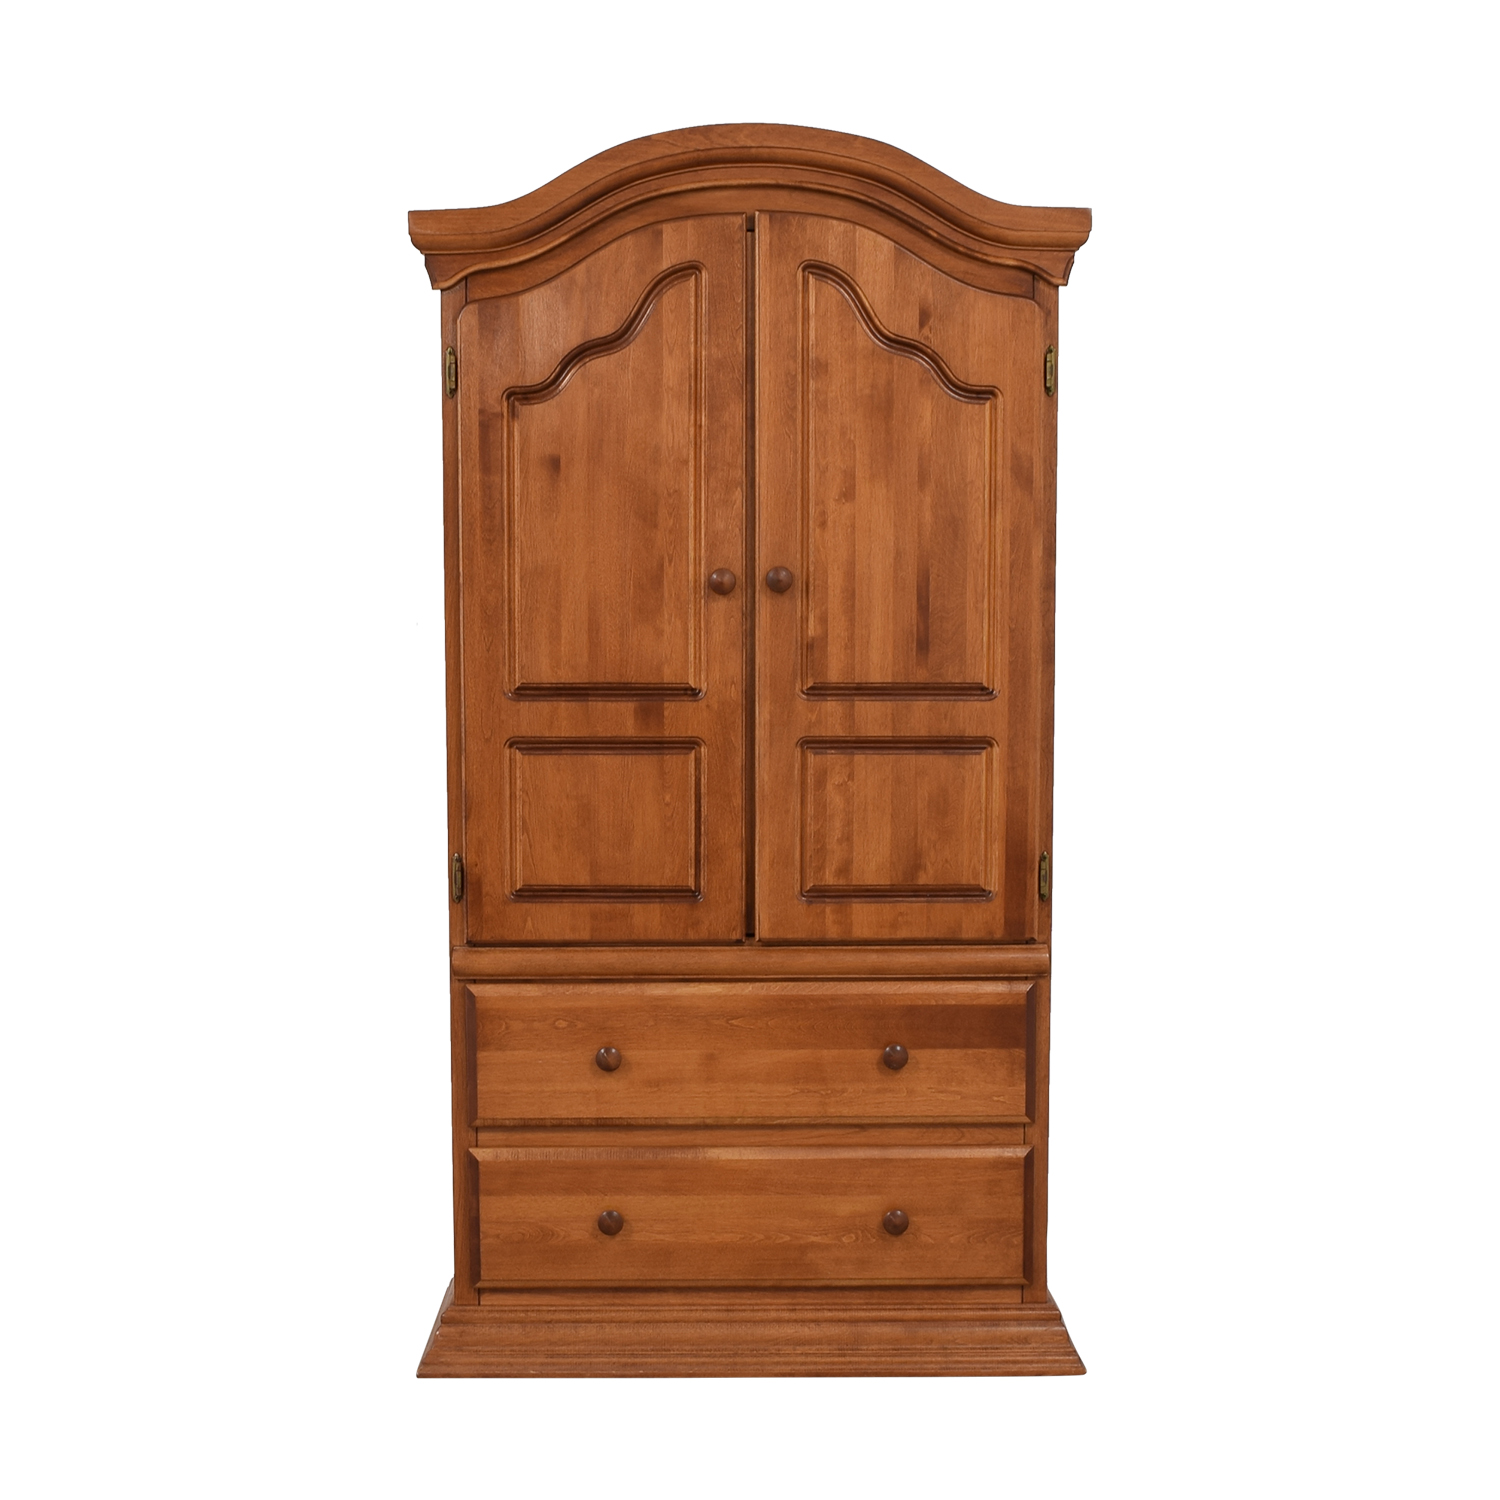 Bellini Bellini Two-Drawer Wood Clothing Armoire on sale